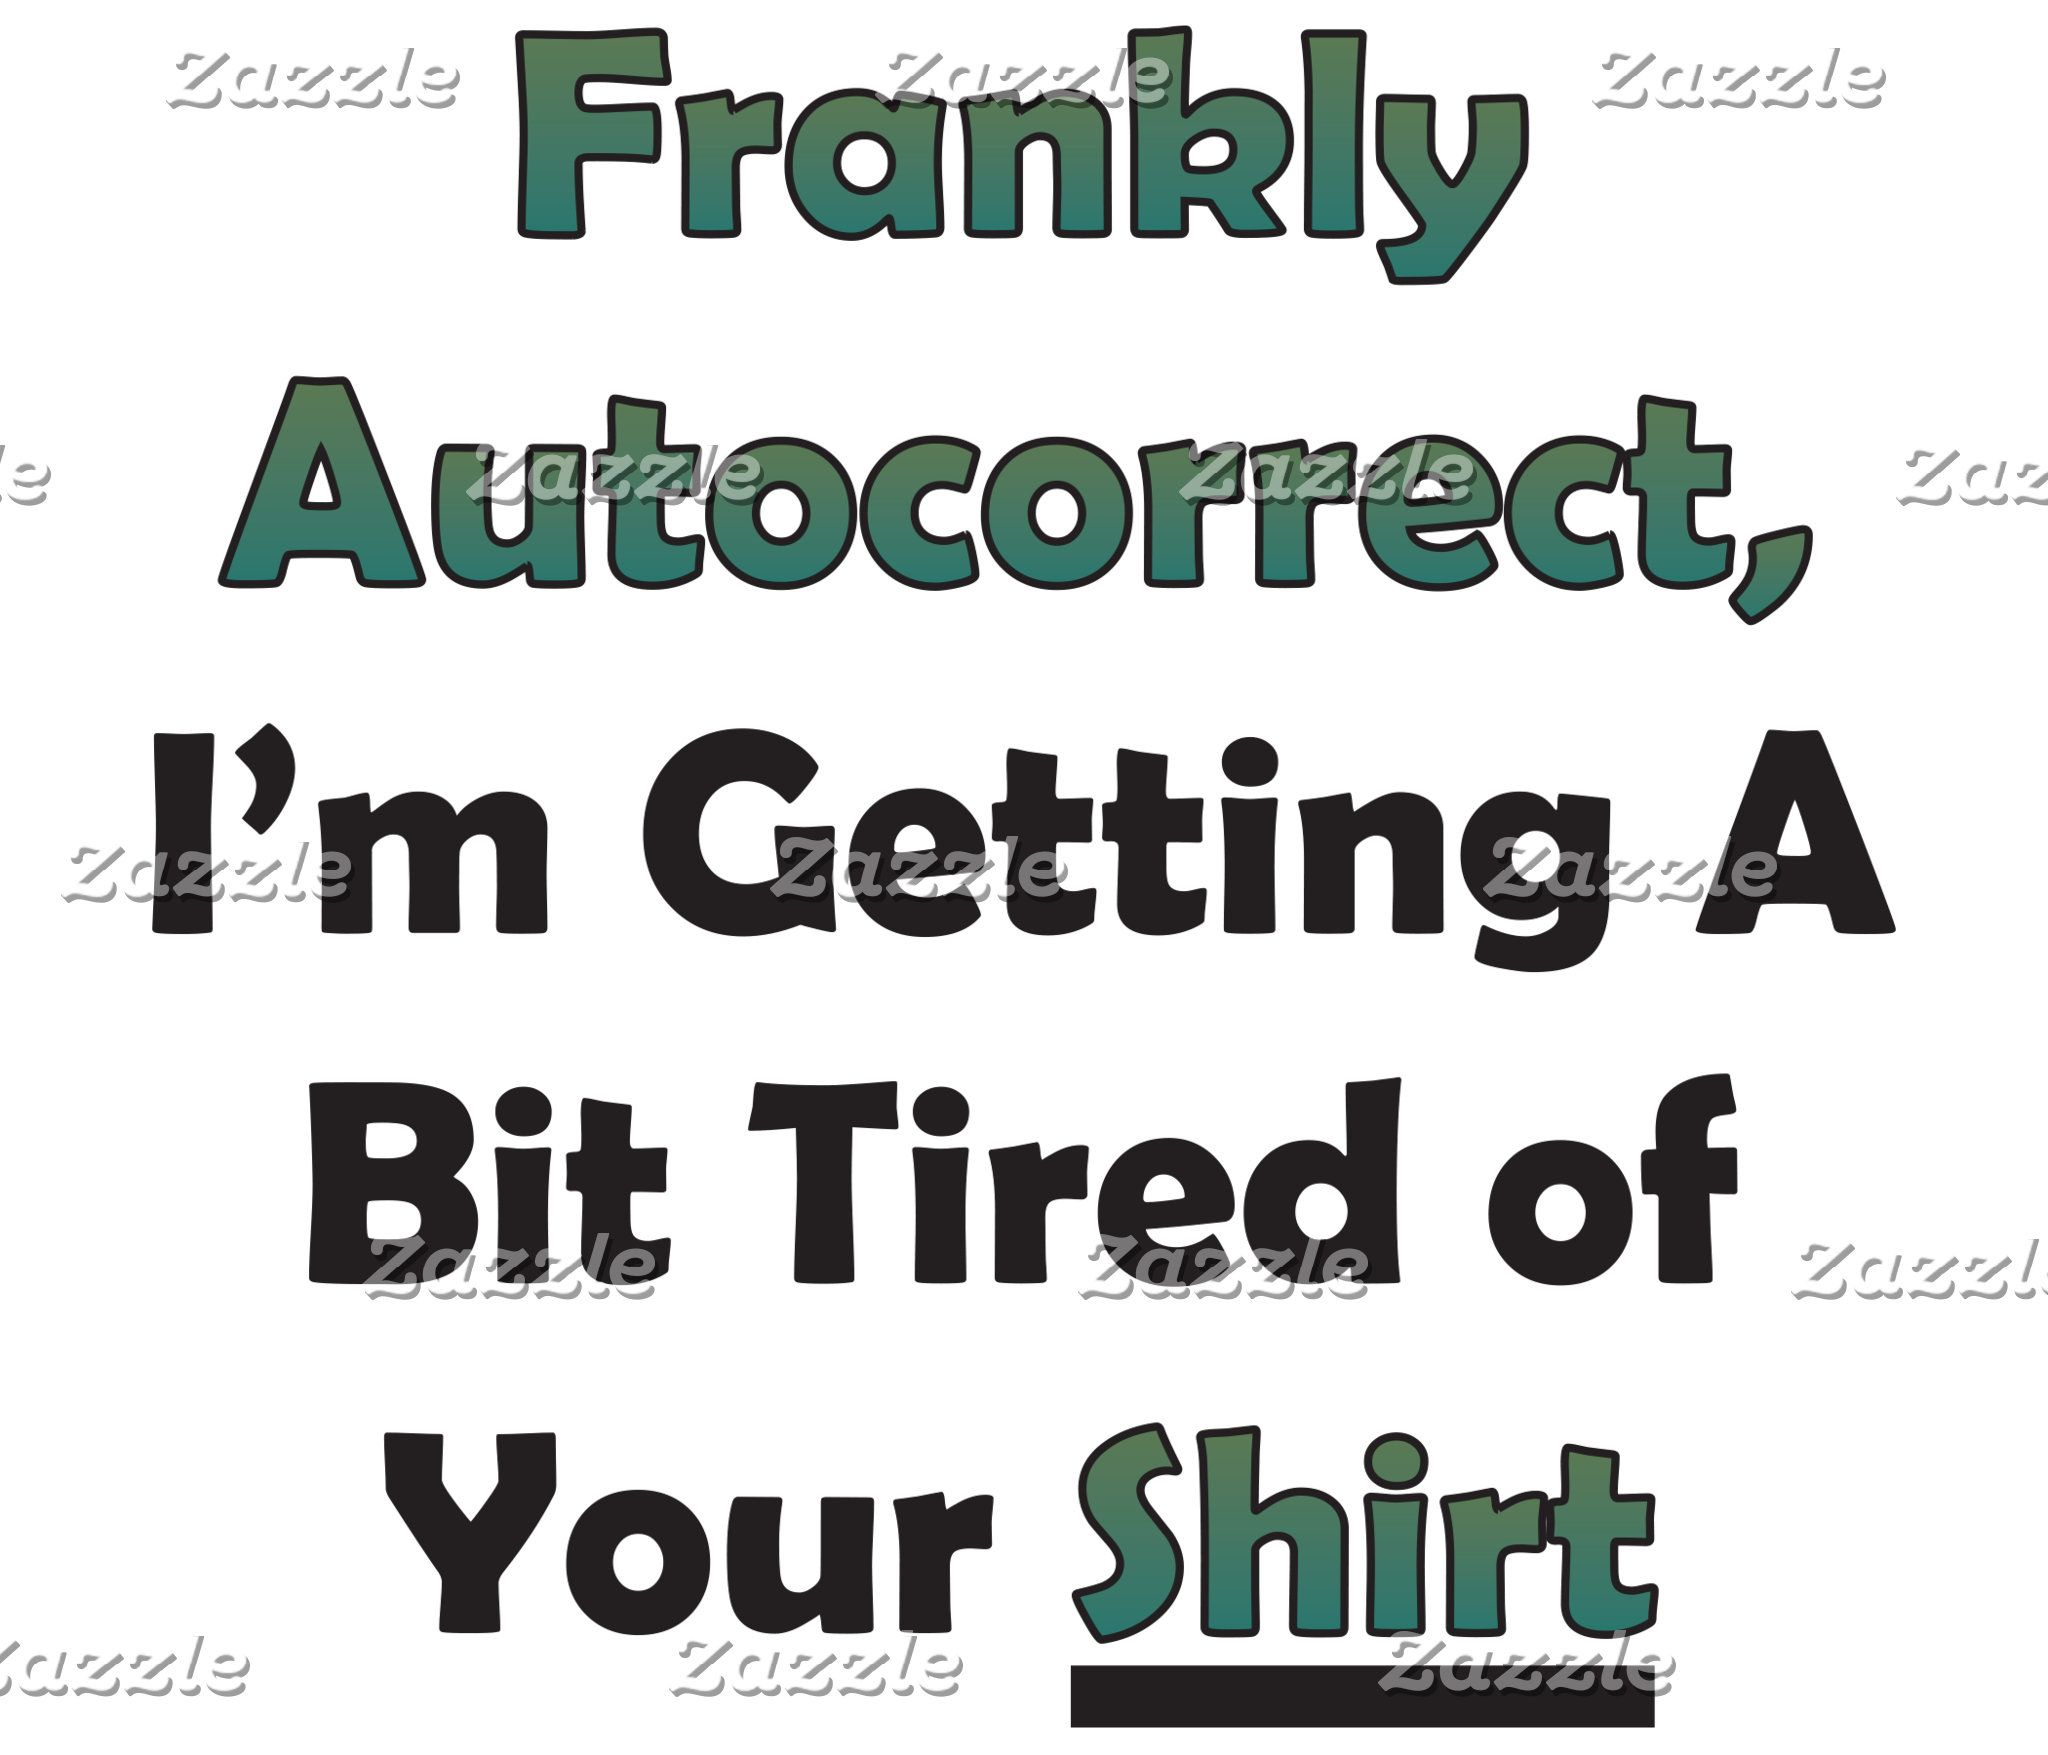 Tired of Autocorrect